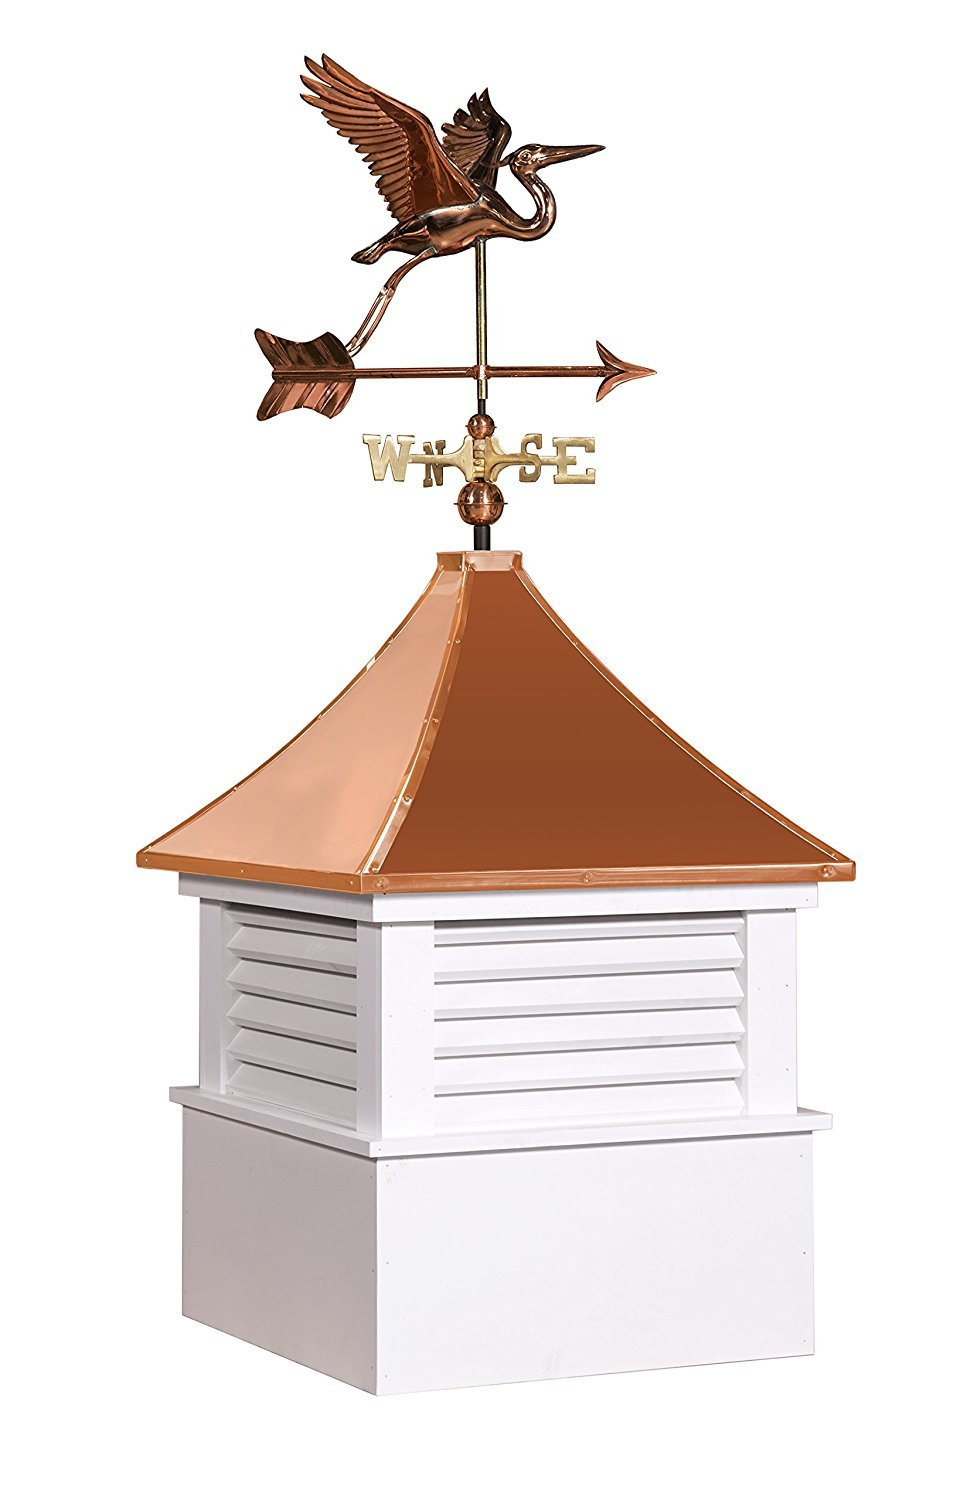 East Coast Weathervanes and Cupolas Vinyl Attleboro Cupola With Heron Weathervane (vinyl, 21 in square x 49 in tall)